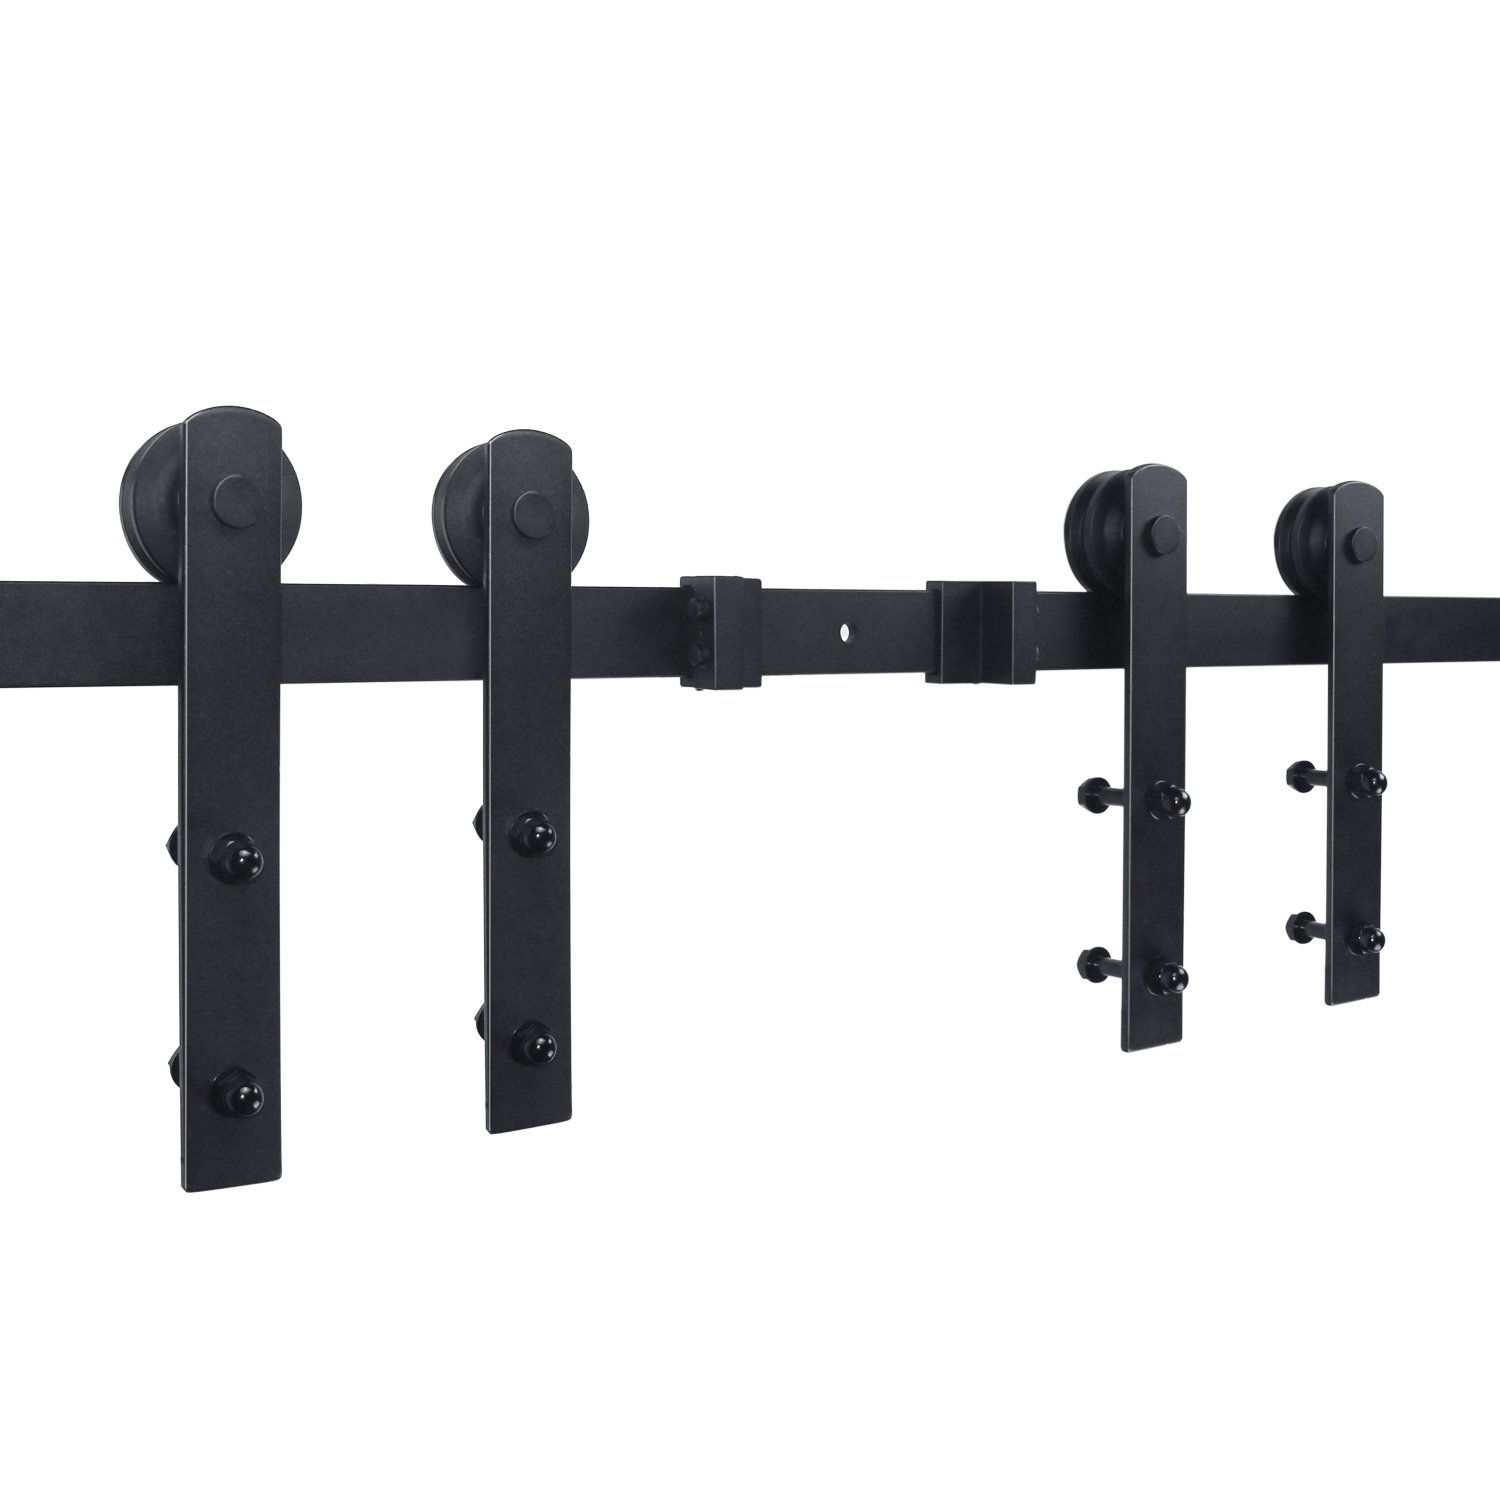 SMARTSTANDARD 12ft Double Door Sliding Barn Door Hardware (Black) (I Shape Hangers) (2 x6.0 foot Rail)